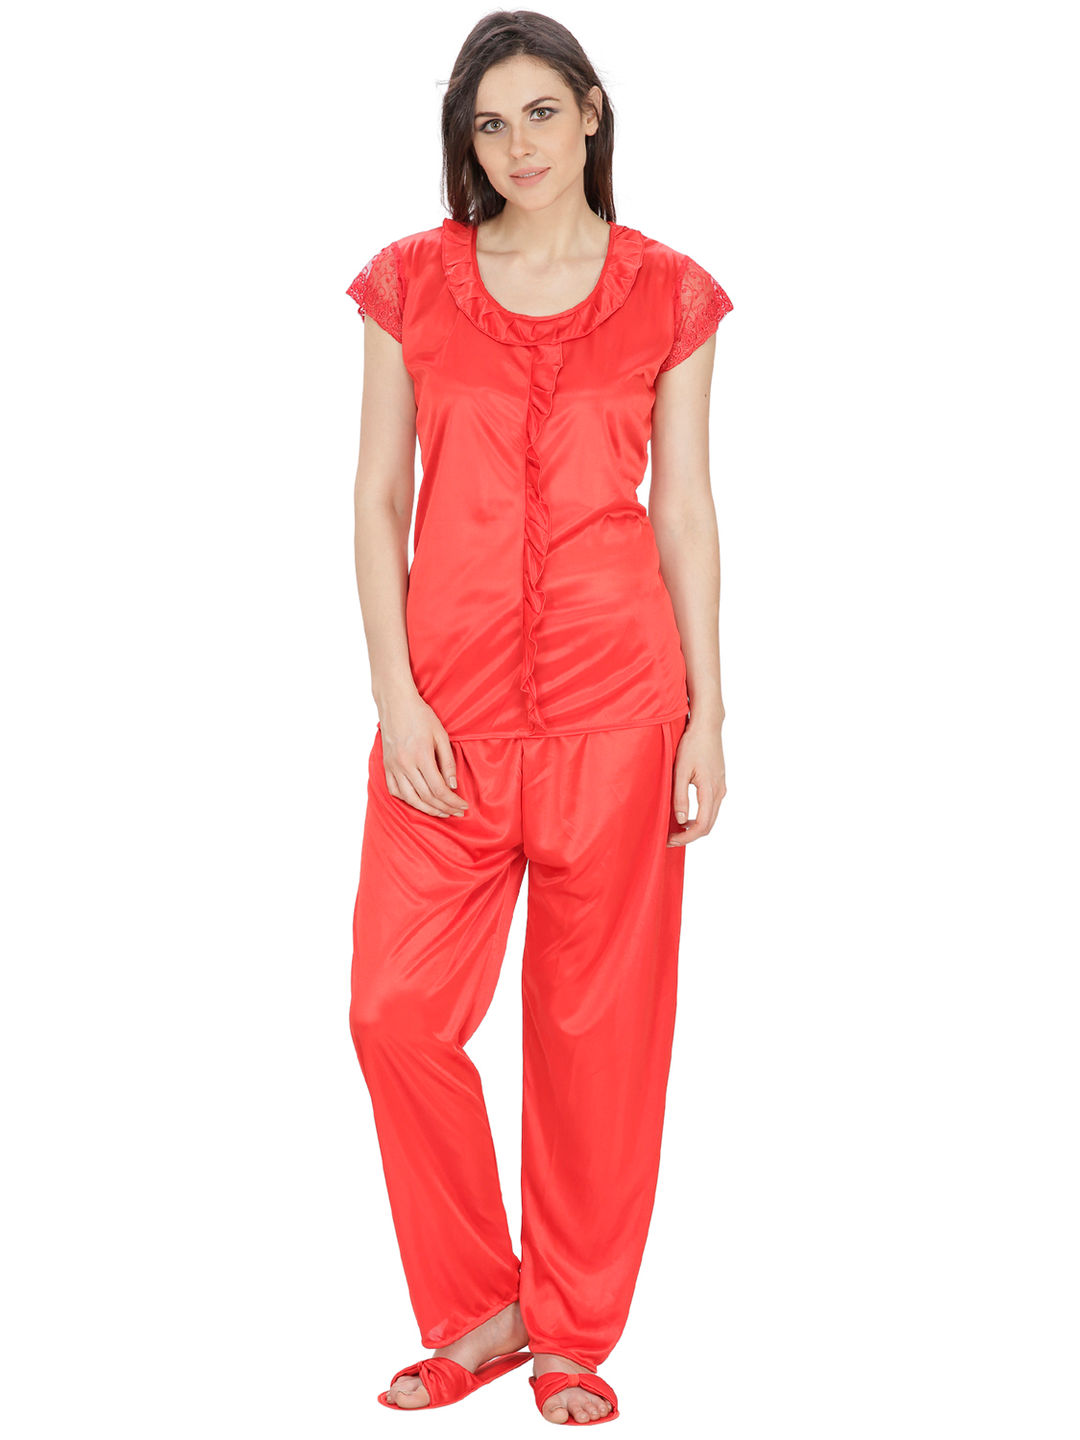 3a9b7c0dab Secret Wish Women's Satin Red Nightsuit Set with Slippers (Red, Free Size)